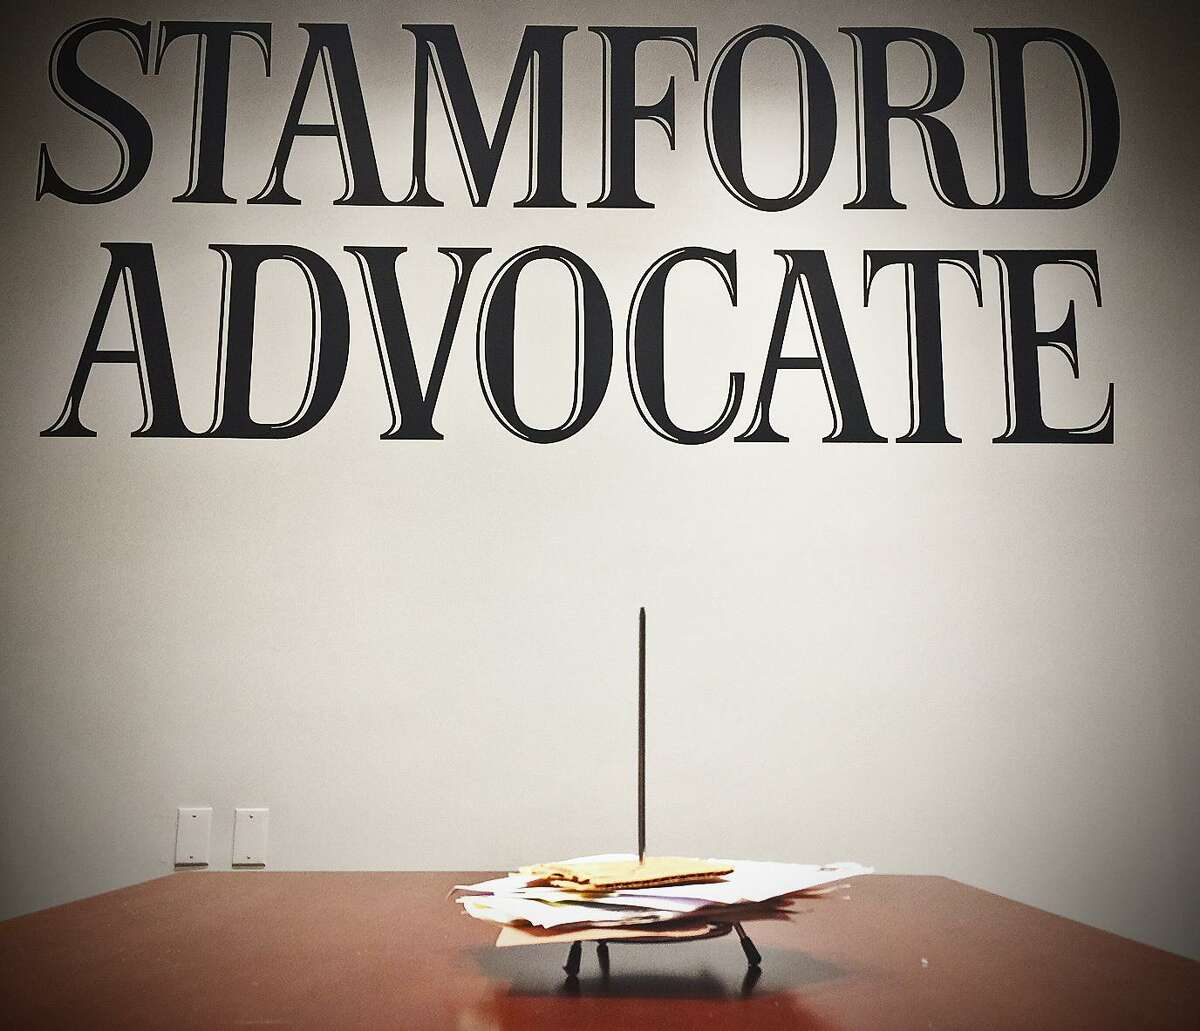 The Stamford Advocate moved to the first floor of 1055 Washington Blvd. across from Mill River Park last week.